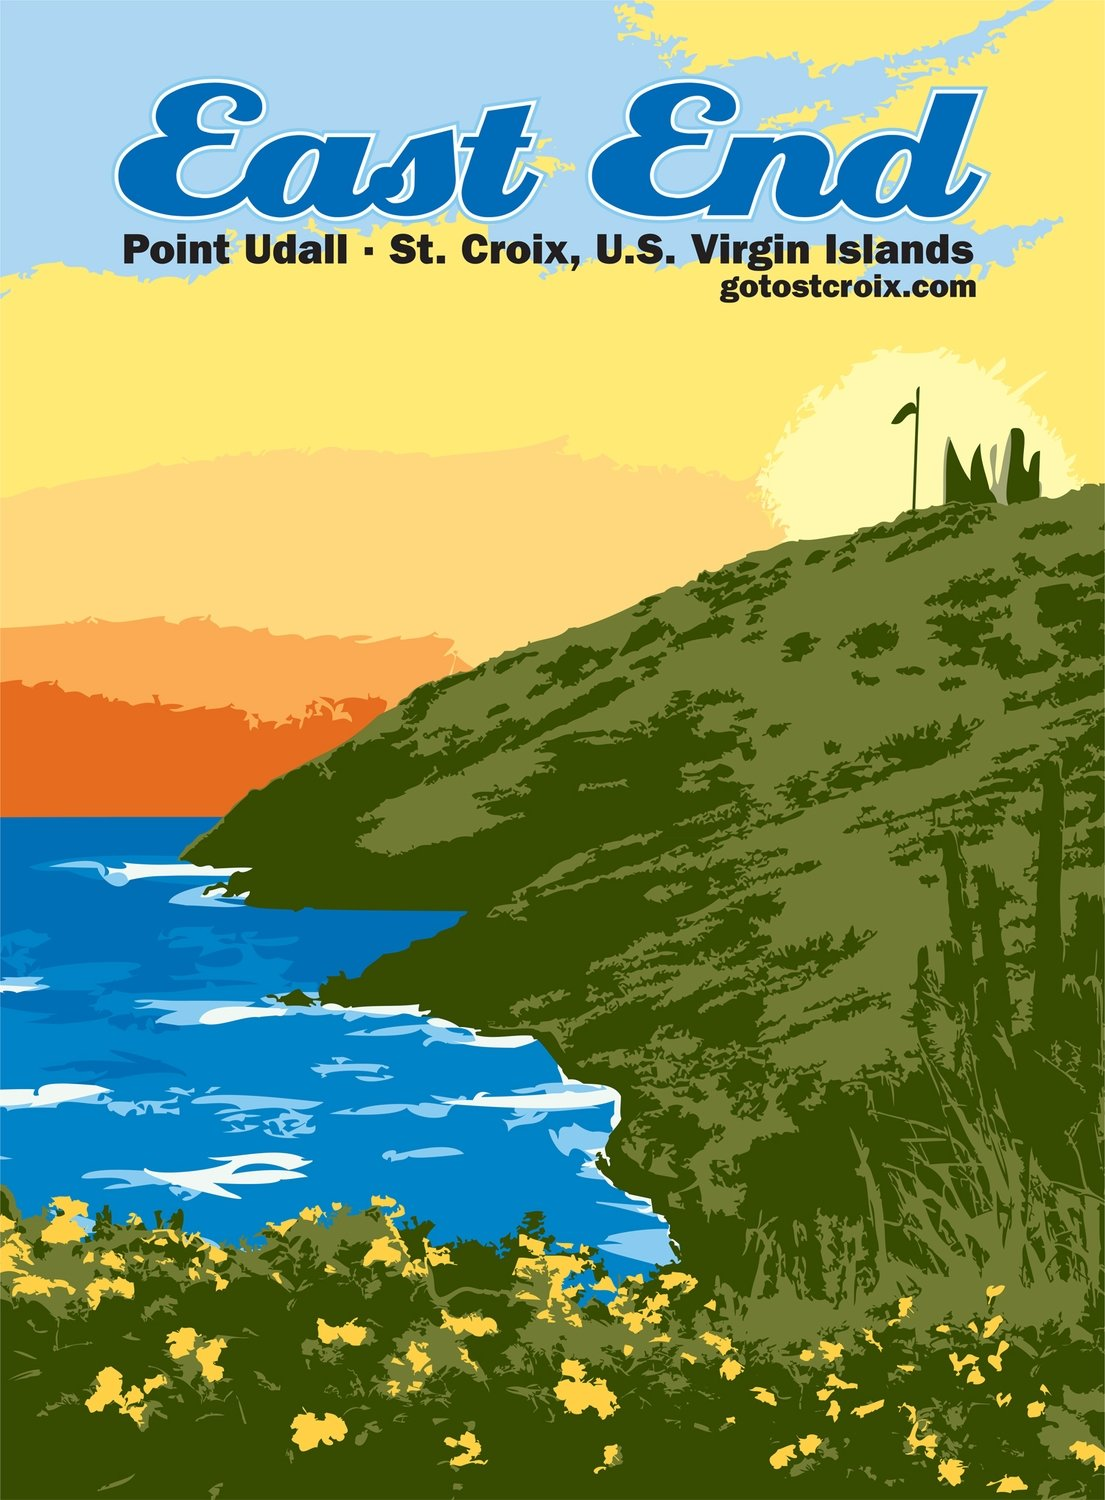 Poster: East End, Point Udall